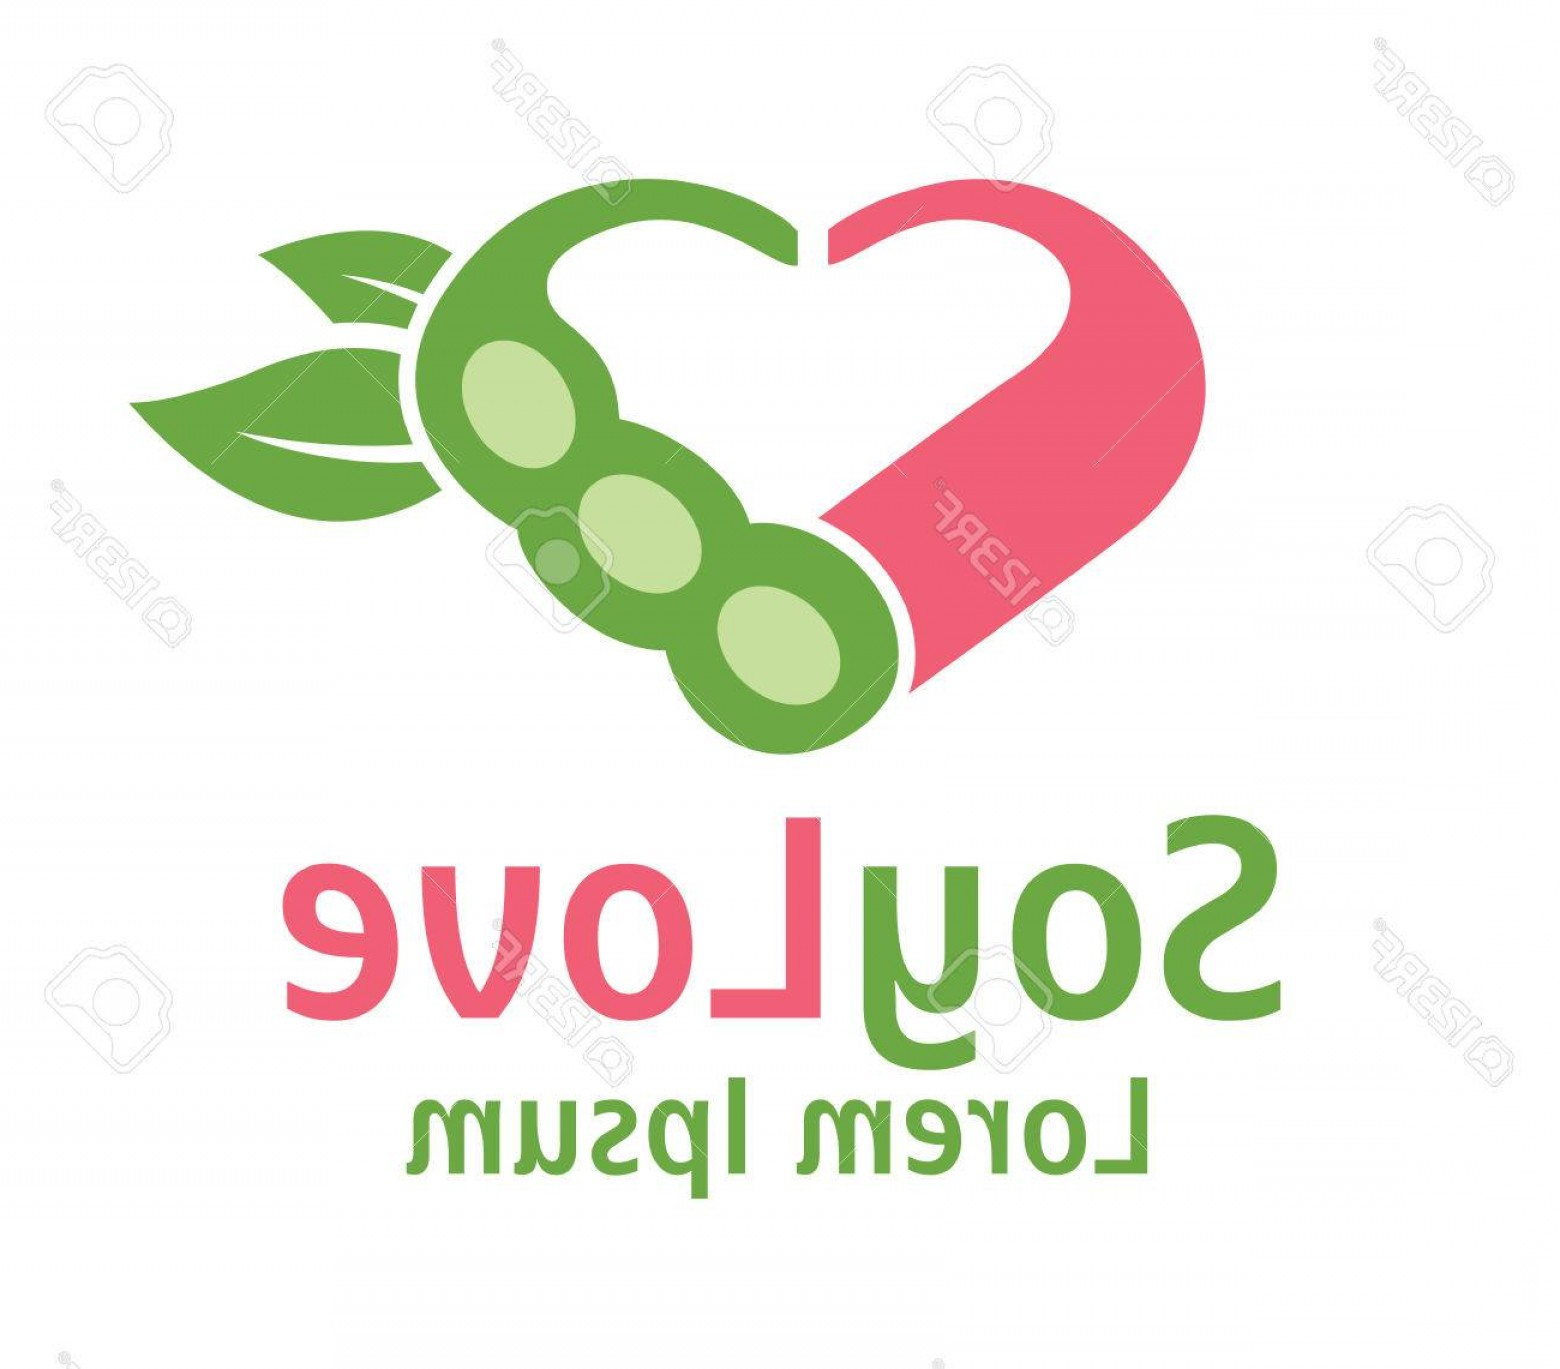 Vegan Heart Vectors: Photostock Vector Vector Soy Soya With Exchangeable Text And Hearts Isolated On White Background Suitable For Vegan A